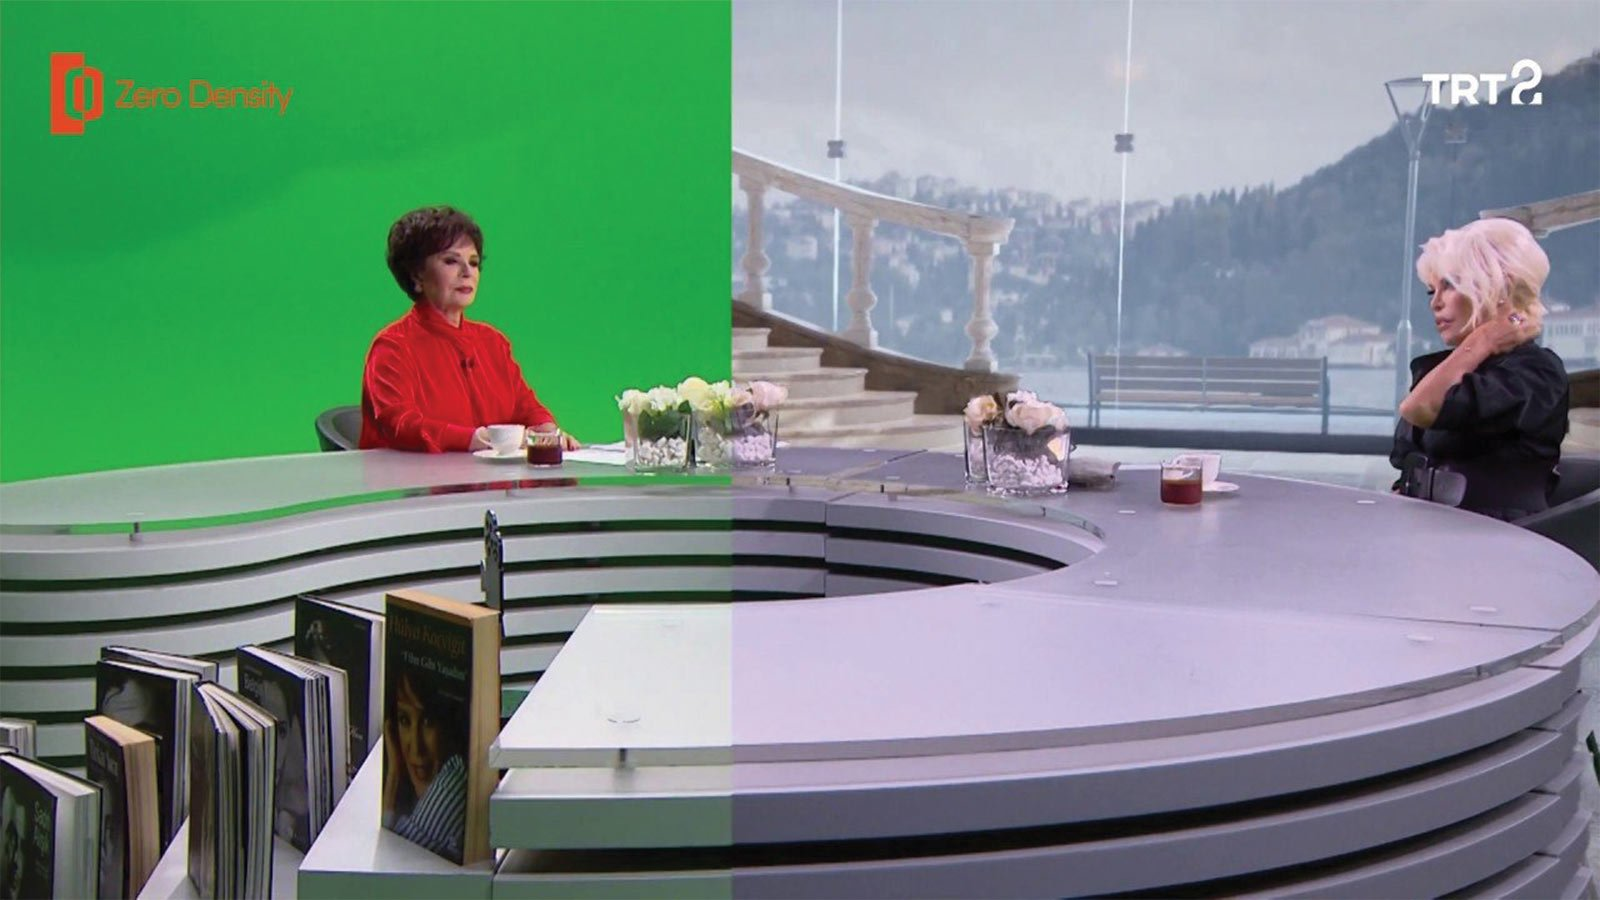 trt2 virtual studio shows